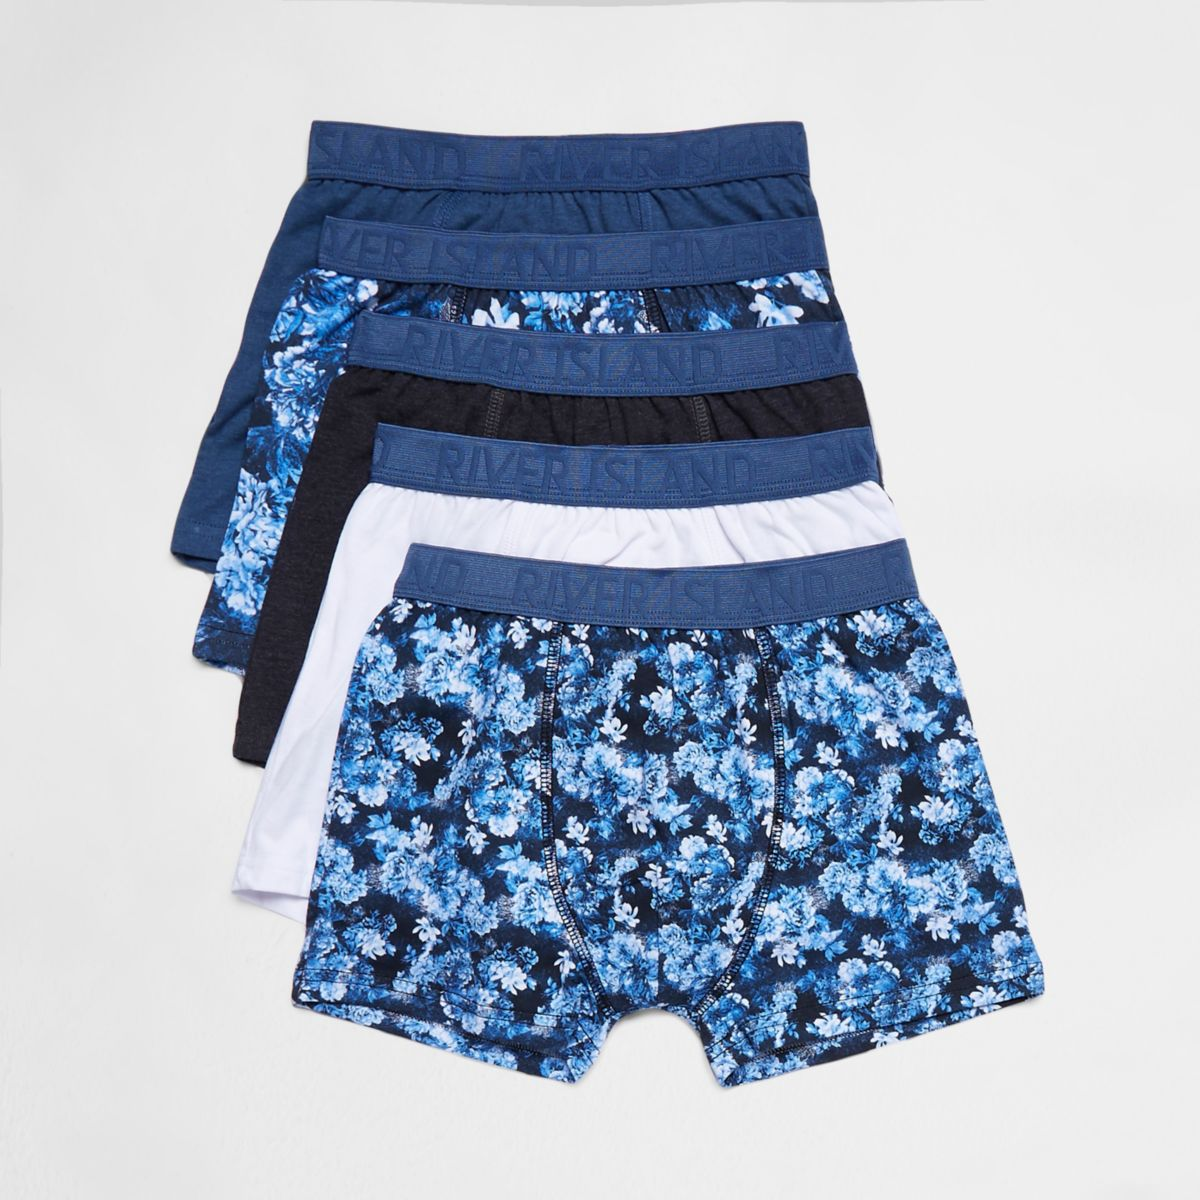 Boys blue floral boxers multipack